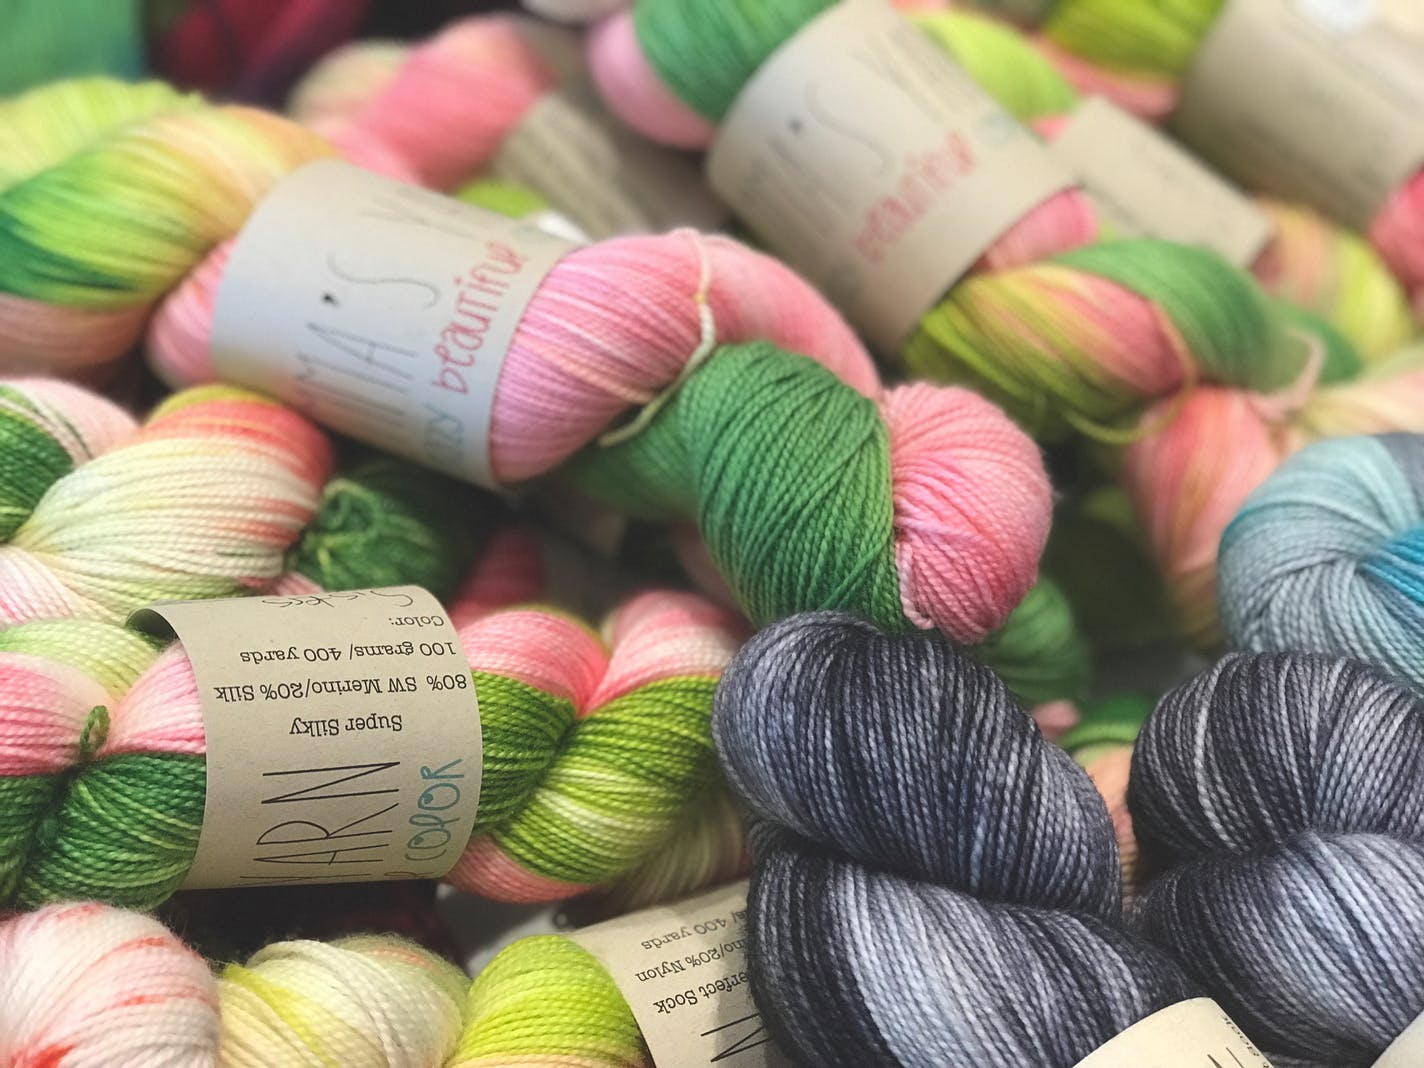 Review of Yarn Substitution Made Easy